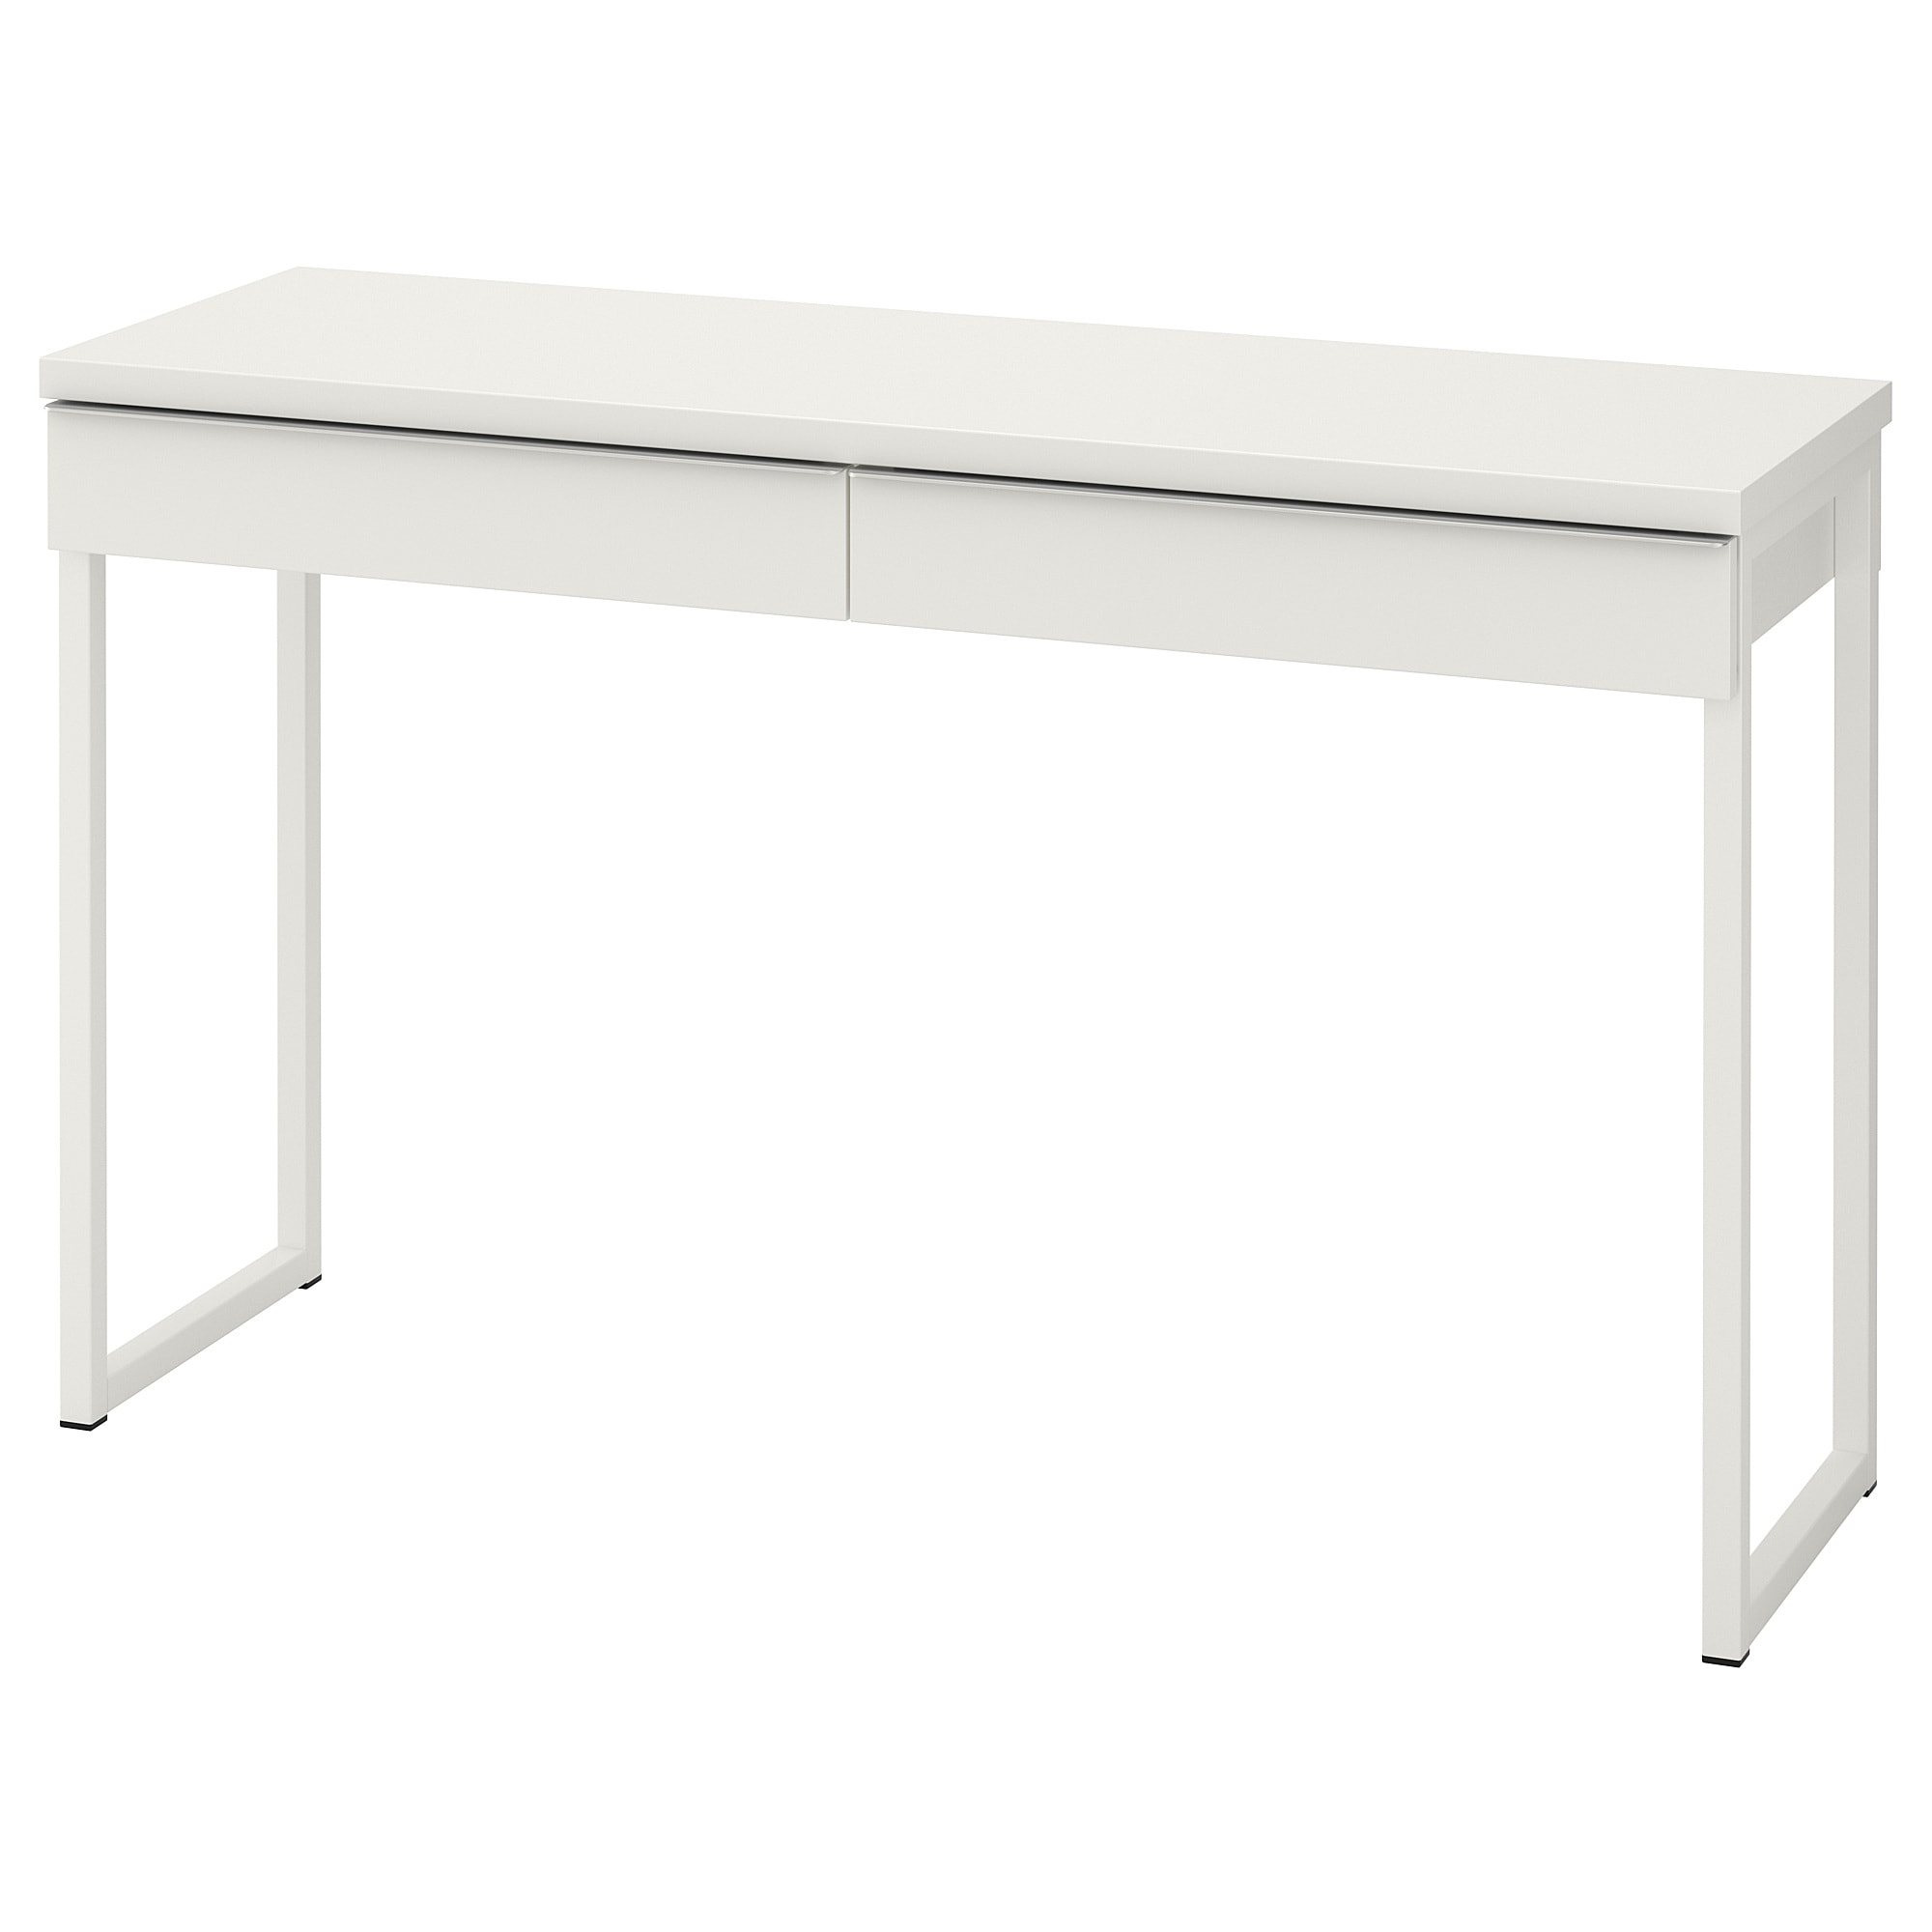 ikea besta desk instructions